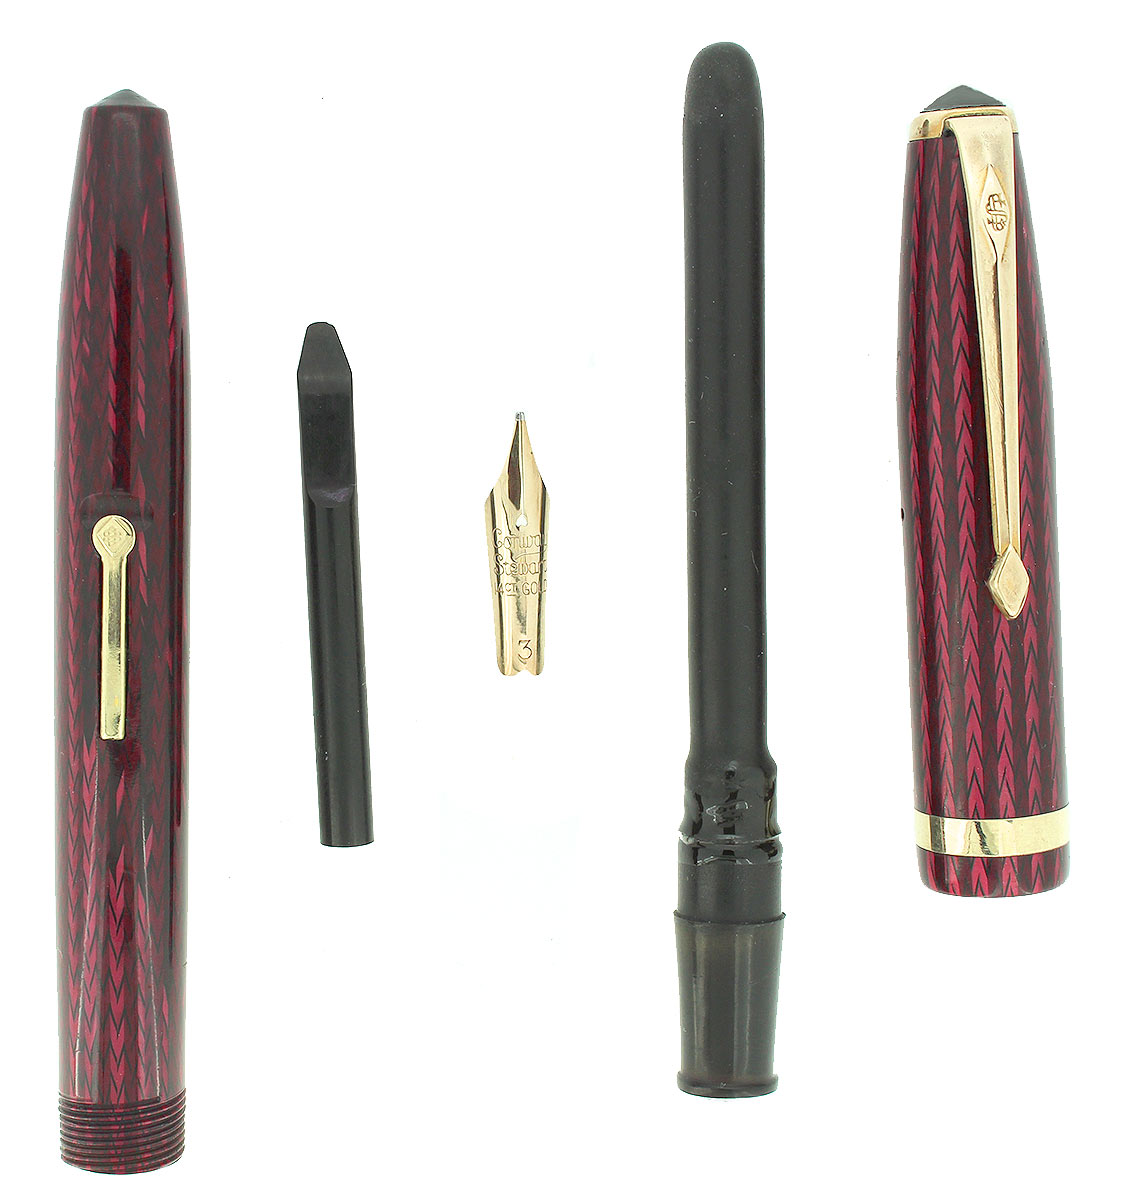 CIRCA 1956 CONWAY STEWART RED HERRINGBONE CELLULOID M - BBB FLEX NIB FOUNTAIN PEN RESTORED OFFERED BY ANTIQUE DIGGER